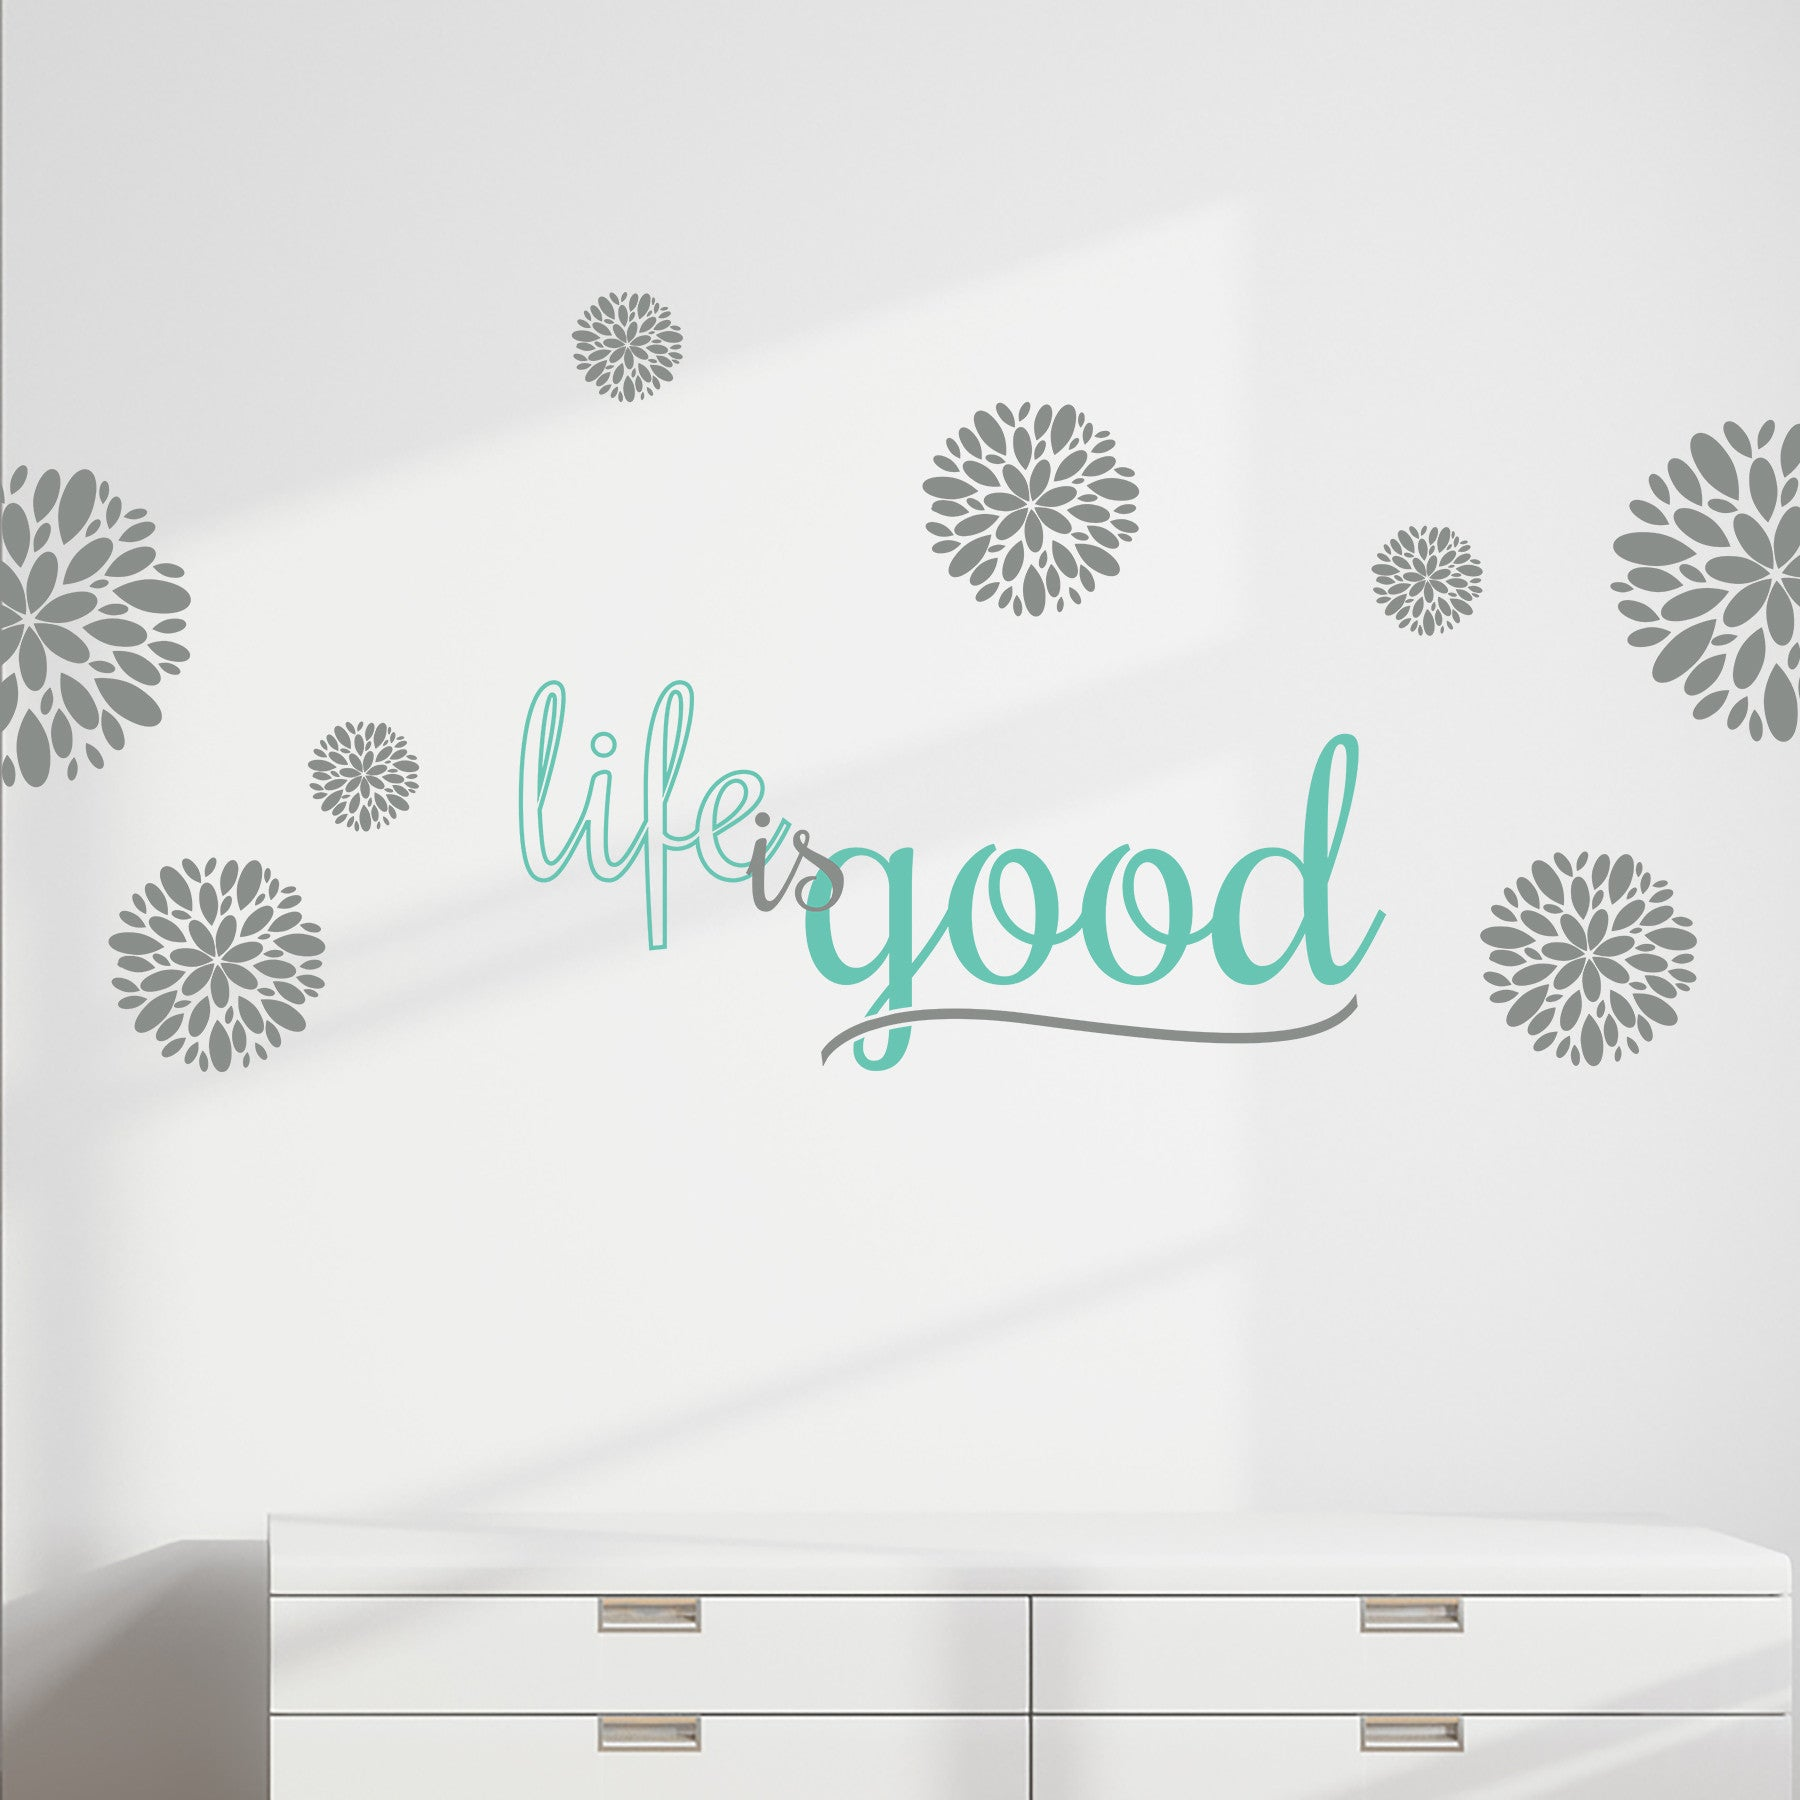 Life is good wall decal wall quote dee cal frenzy wall decor life is good ii amipublicfo Gallery